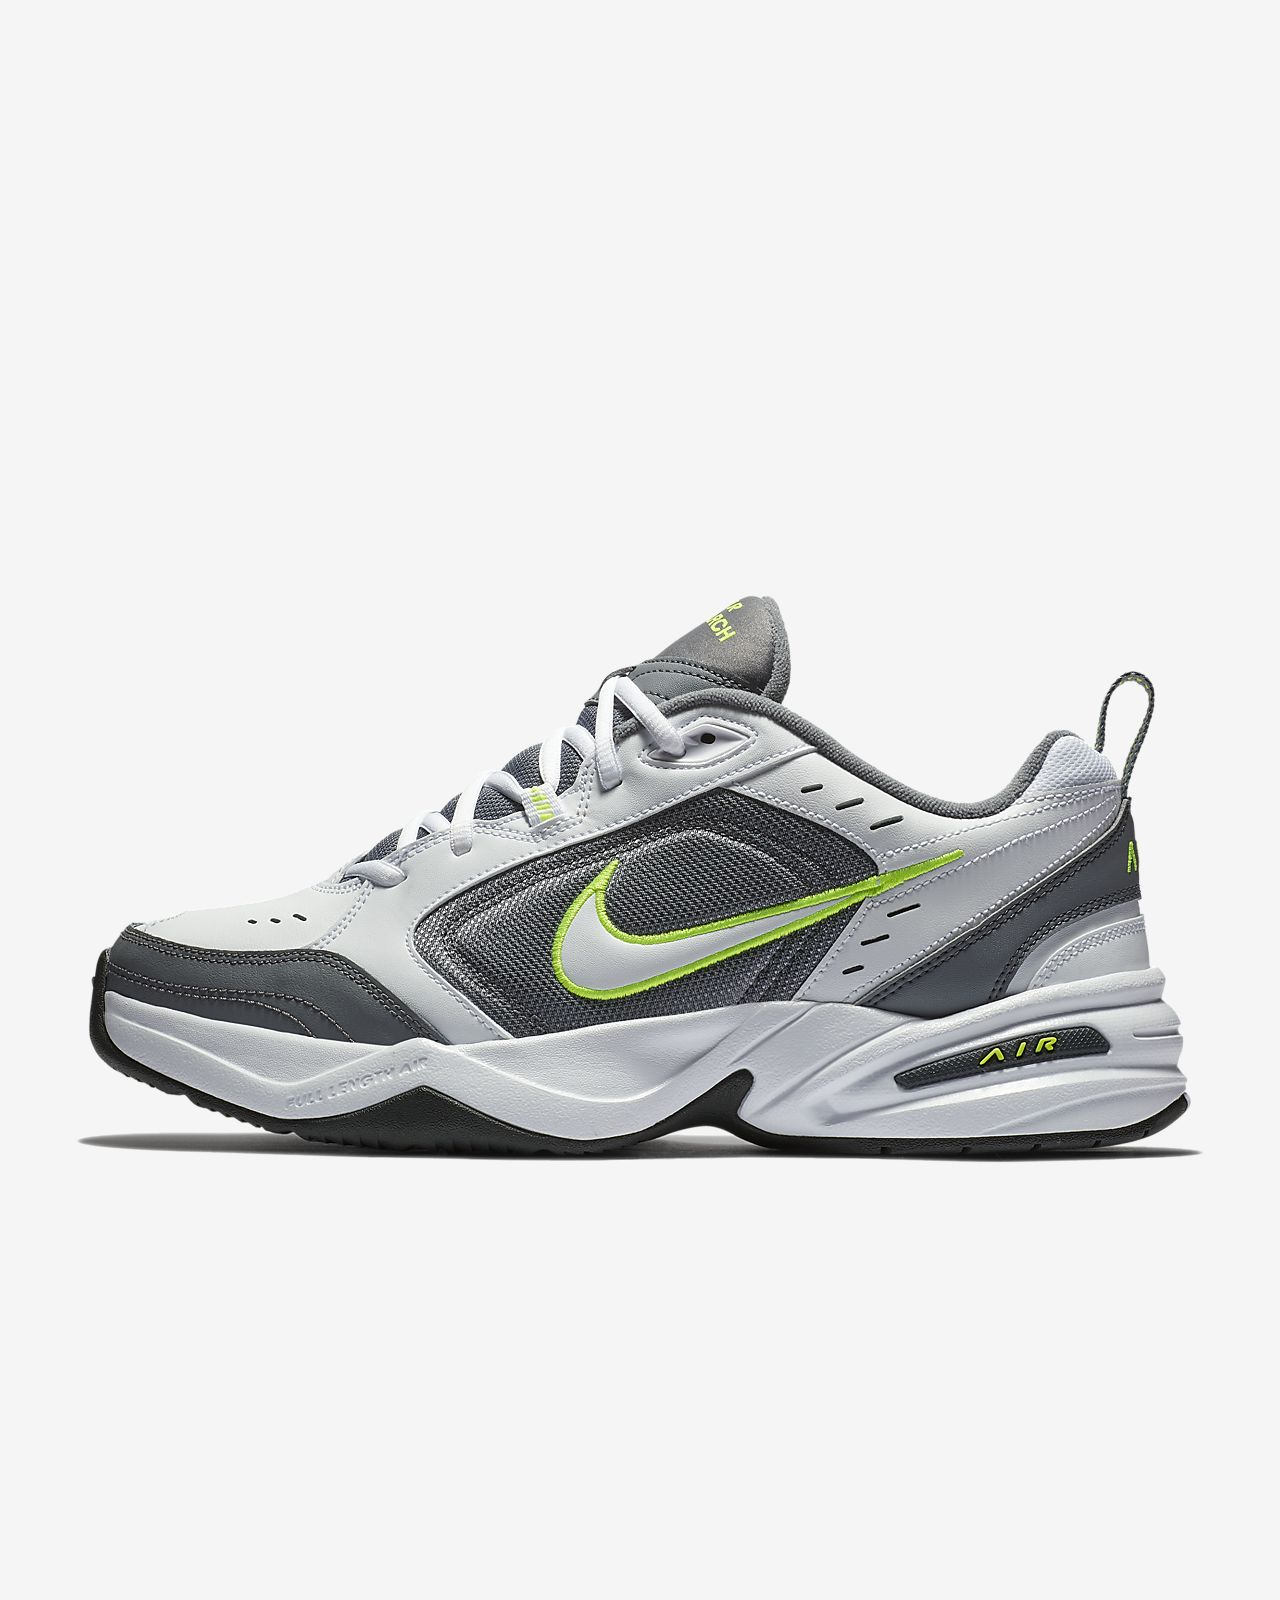 8687231b3ec Nike Air Monarch IV Lifestyle Gym Shoe. Nike.com